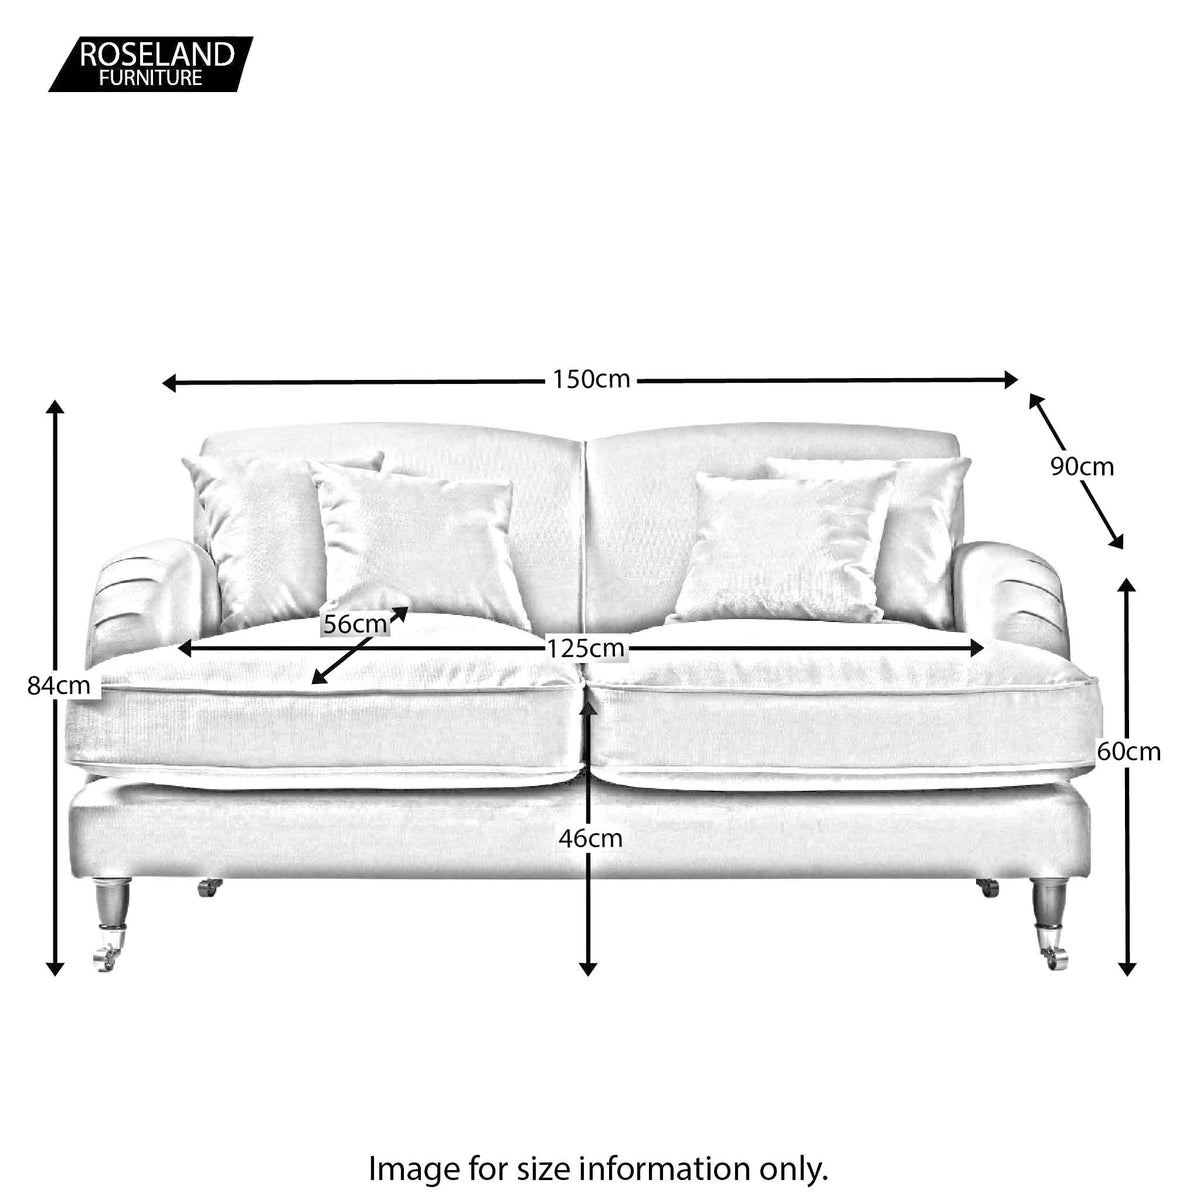 Piper 2 Seater Sofa - Size Guide